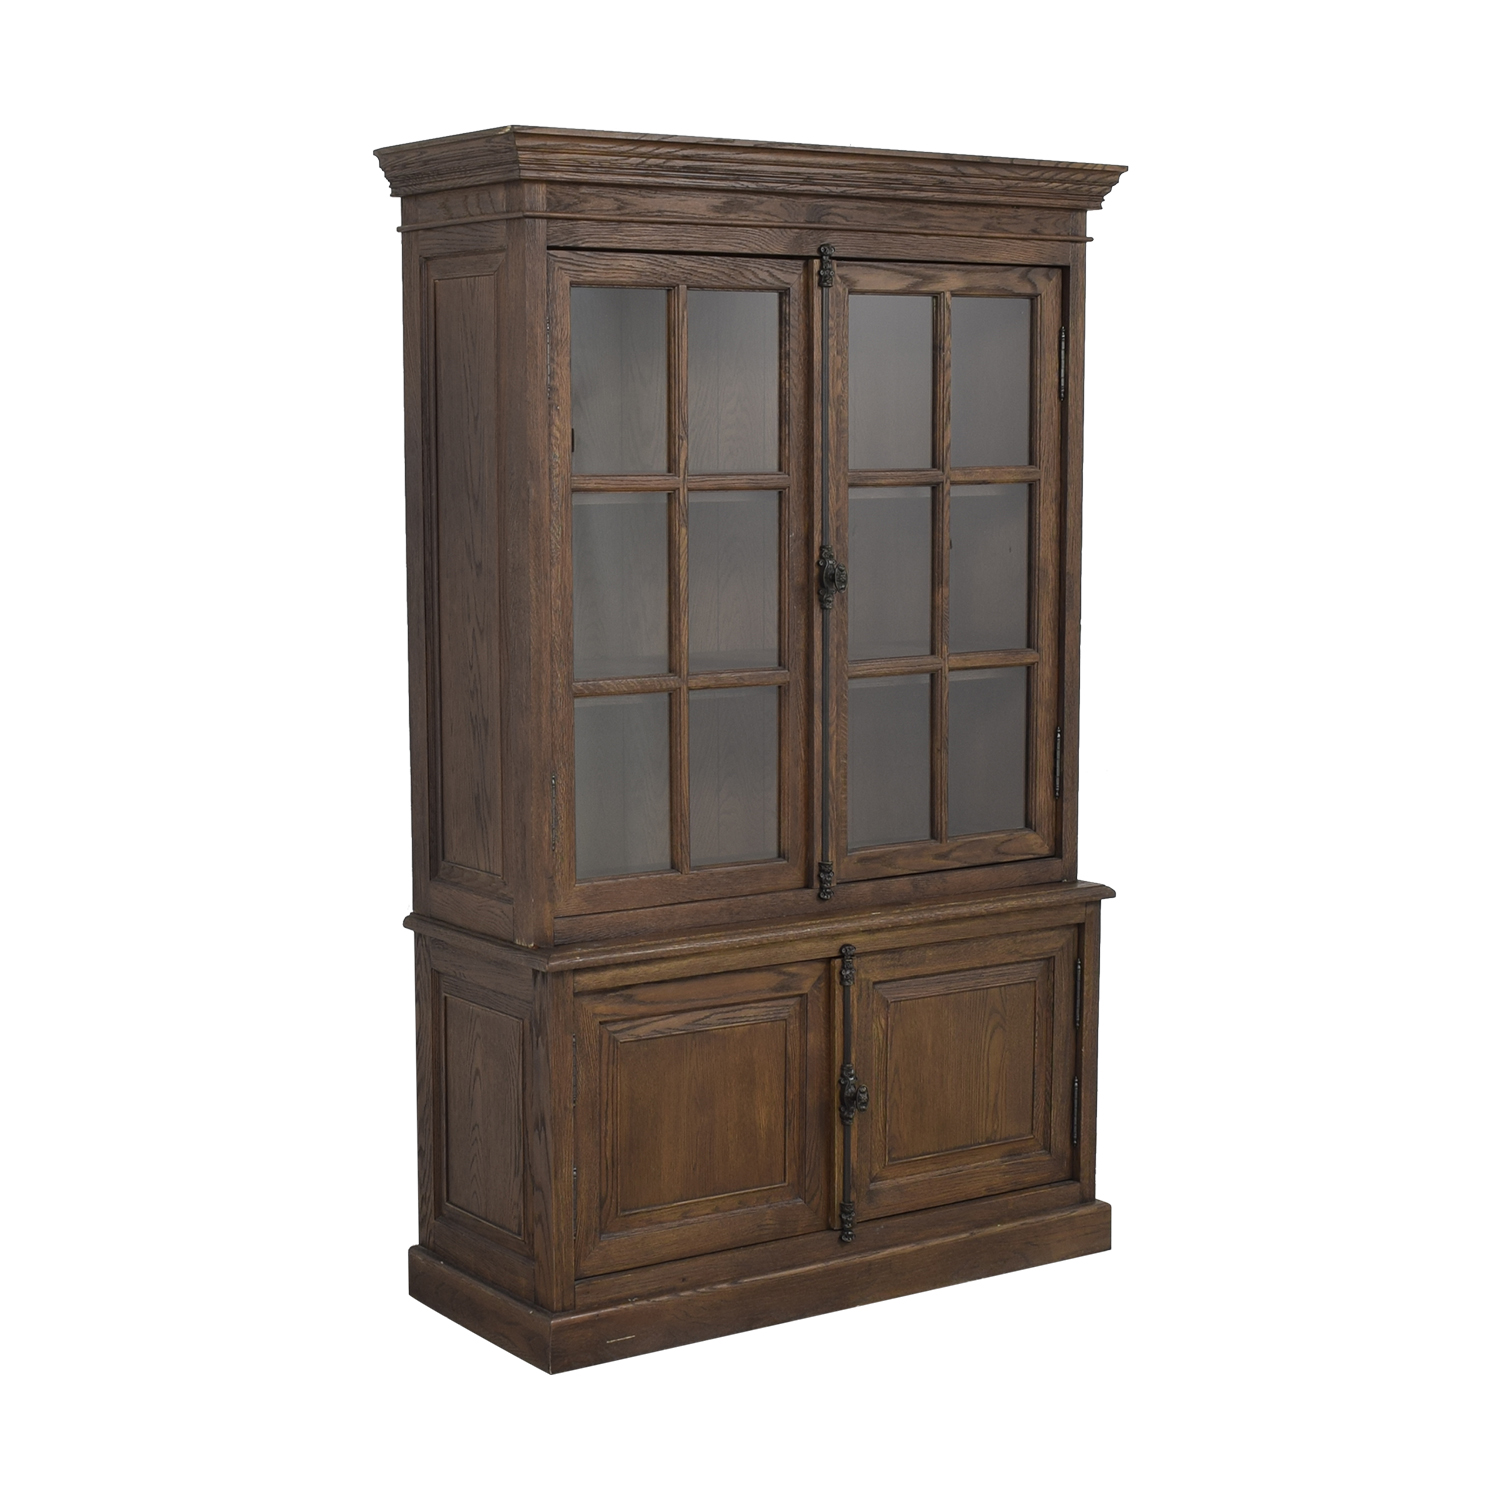 Restoration Hardware Restoration Hardware Display Cabinet Cabinets & Sideboards